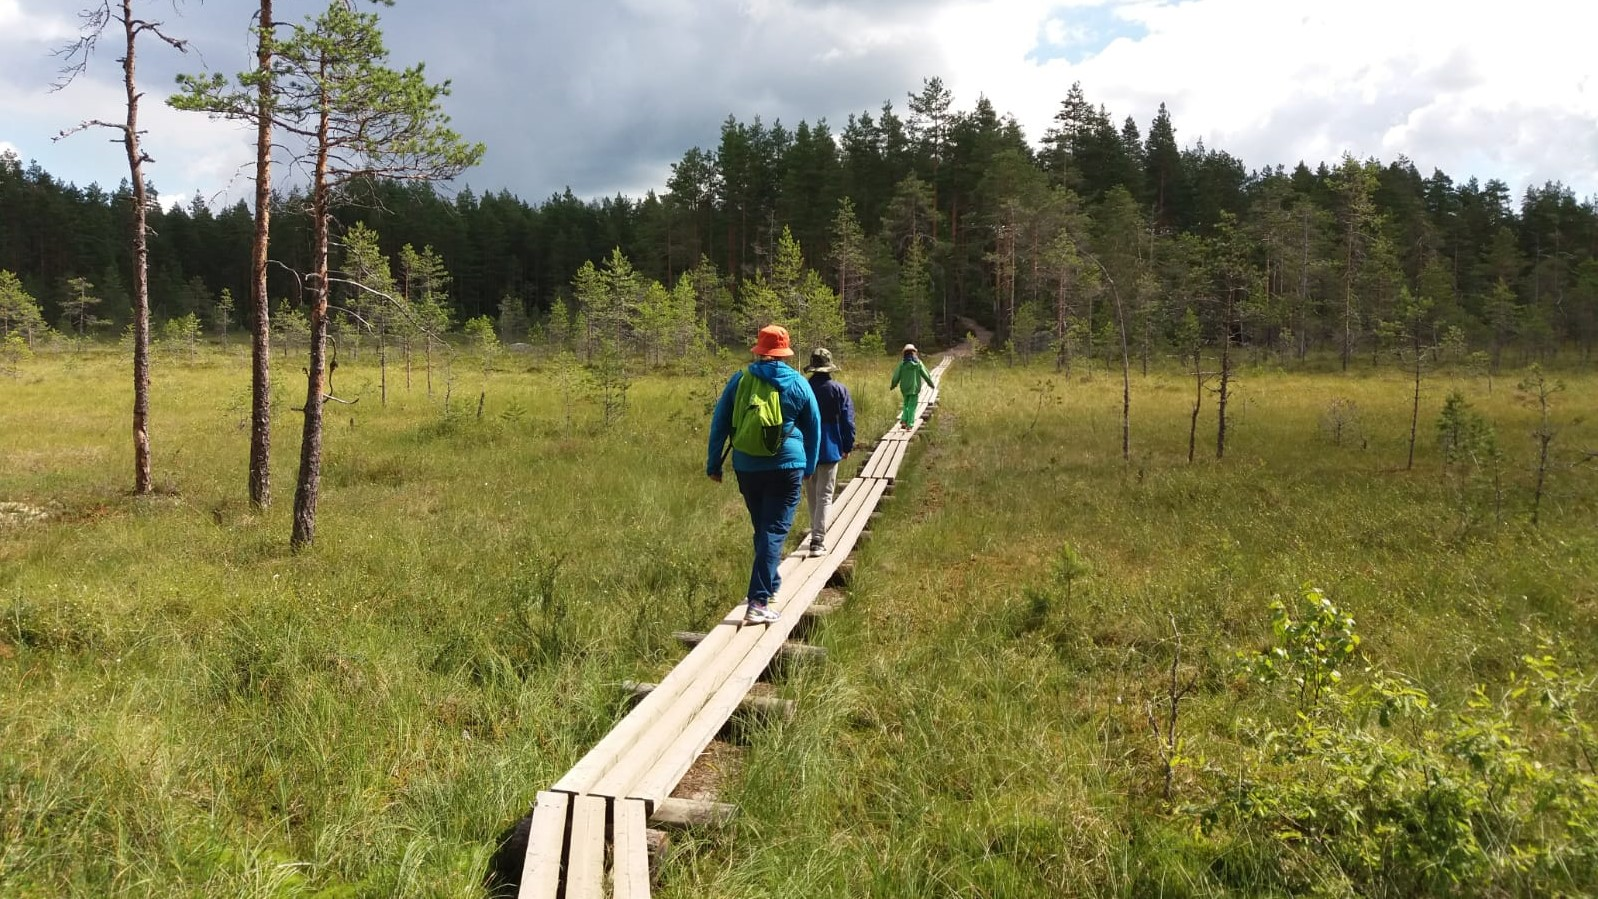 Family walking on wooden trail across a peat bog